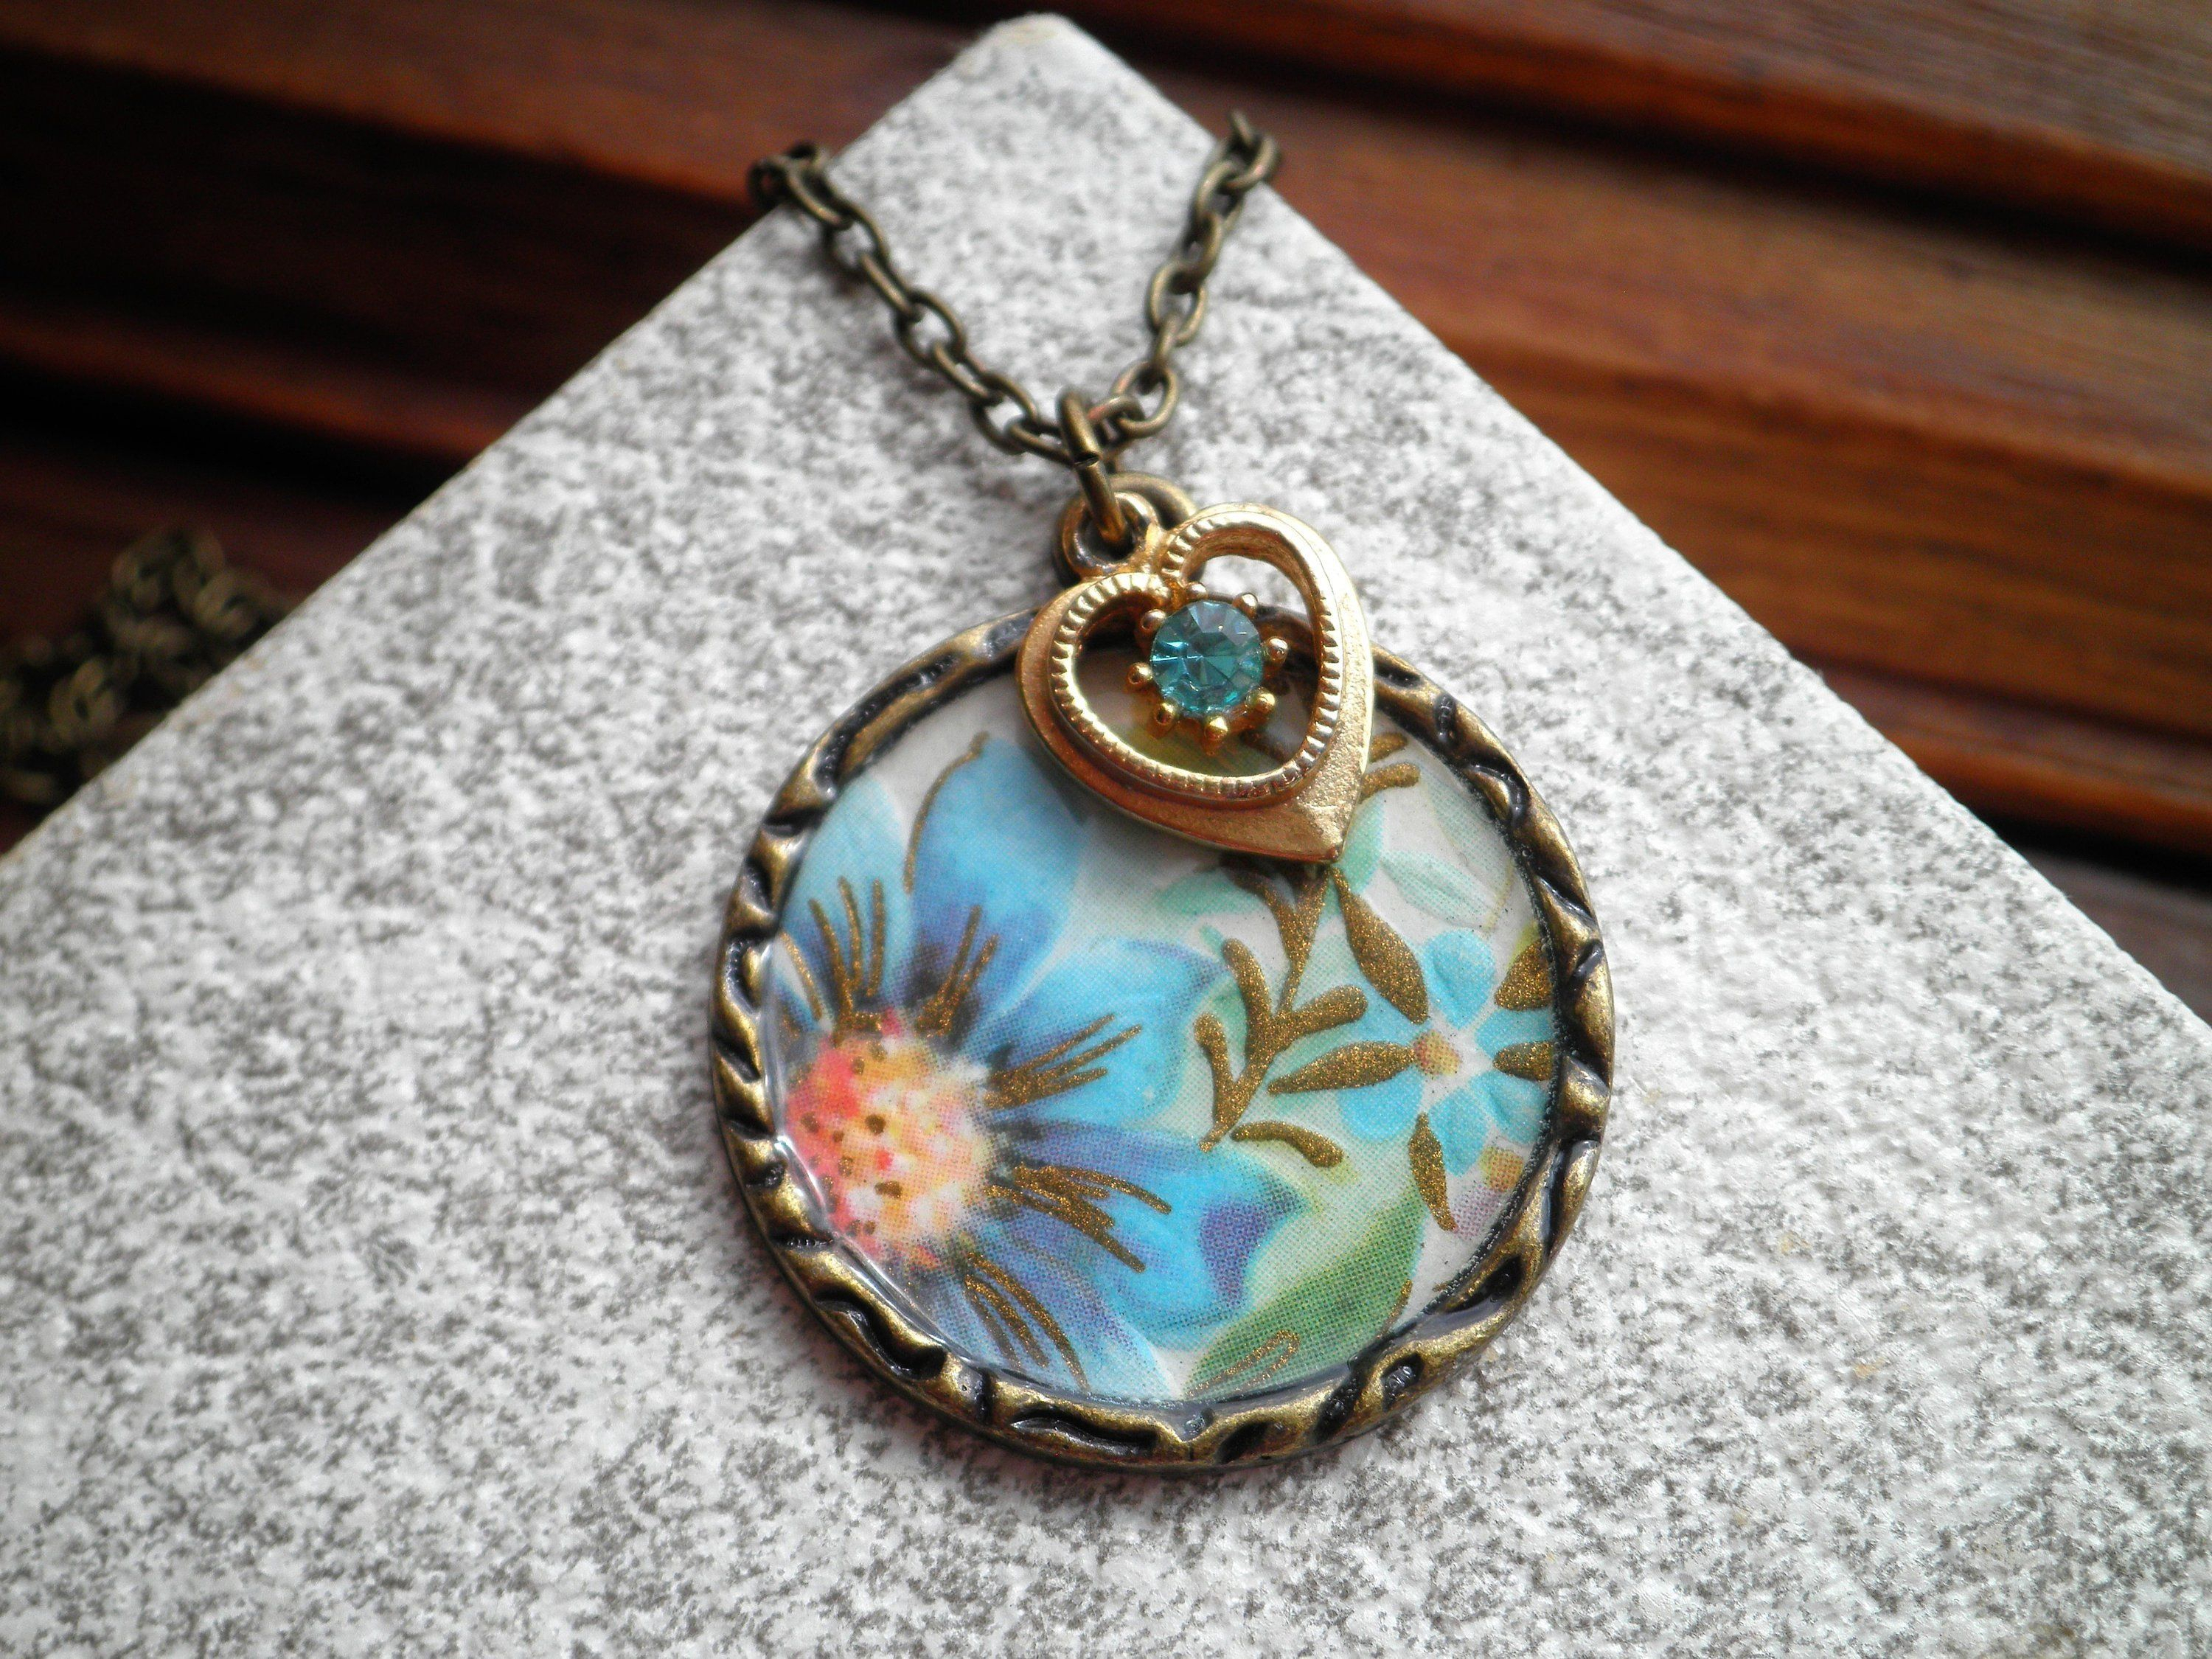 Vintage Flower & Heart Charm Necklace – Blue Flowers Floral Paper Throughout Most Recently Released Baby Blue Enamel Blue Heart Petite Locket Charm Necklaces (Gallery 16 of 25)